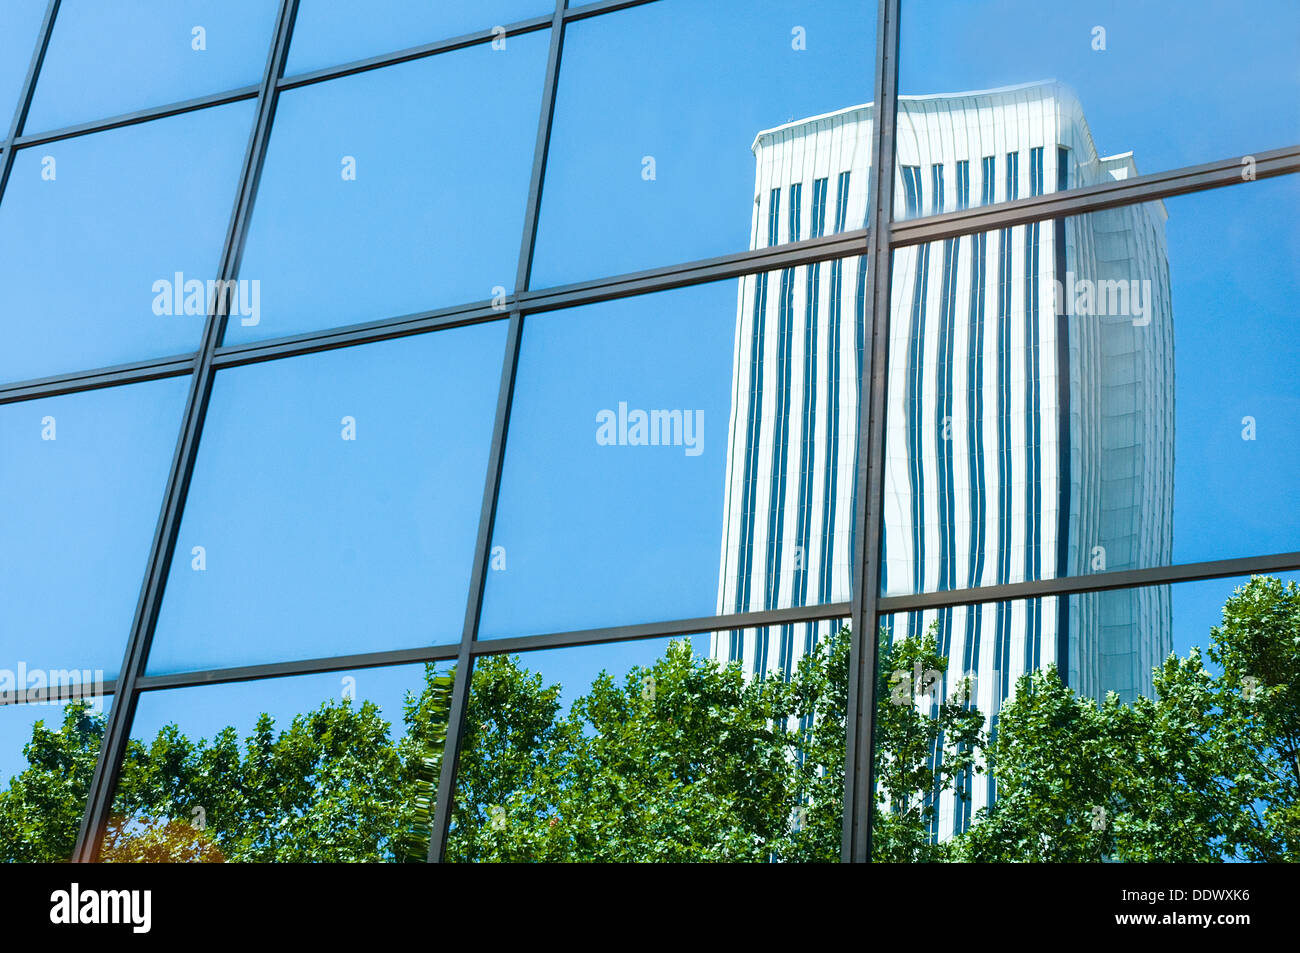 Picasso tower reflected on glass facade. AZCA, Madrid, Spain. - Stock Image